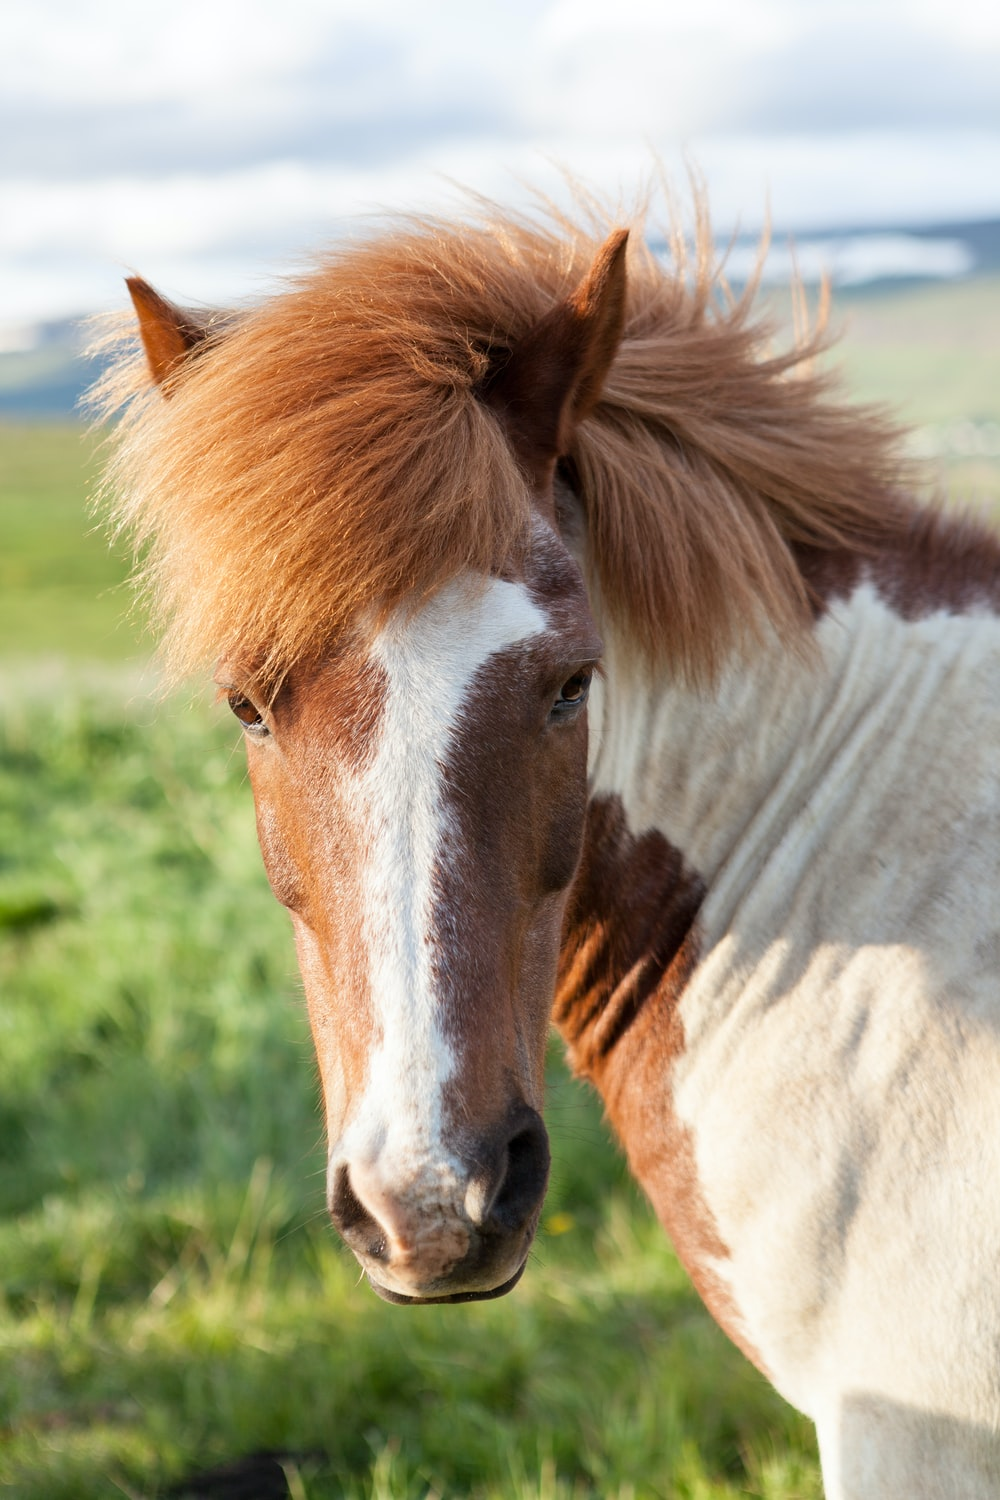 closeup photo of brown and white horse face